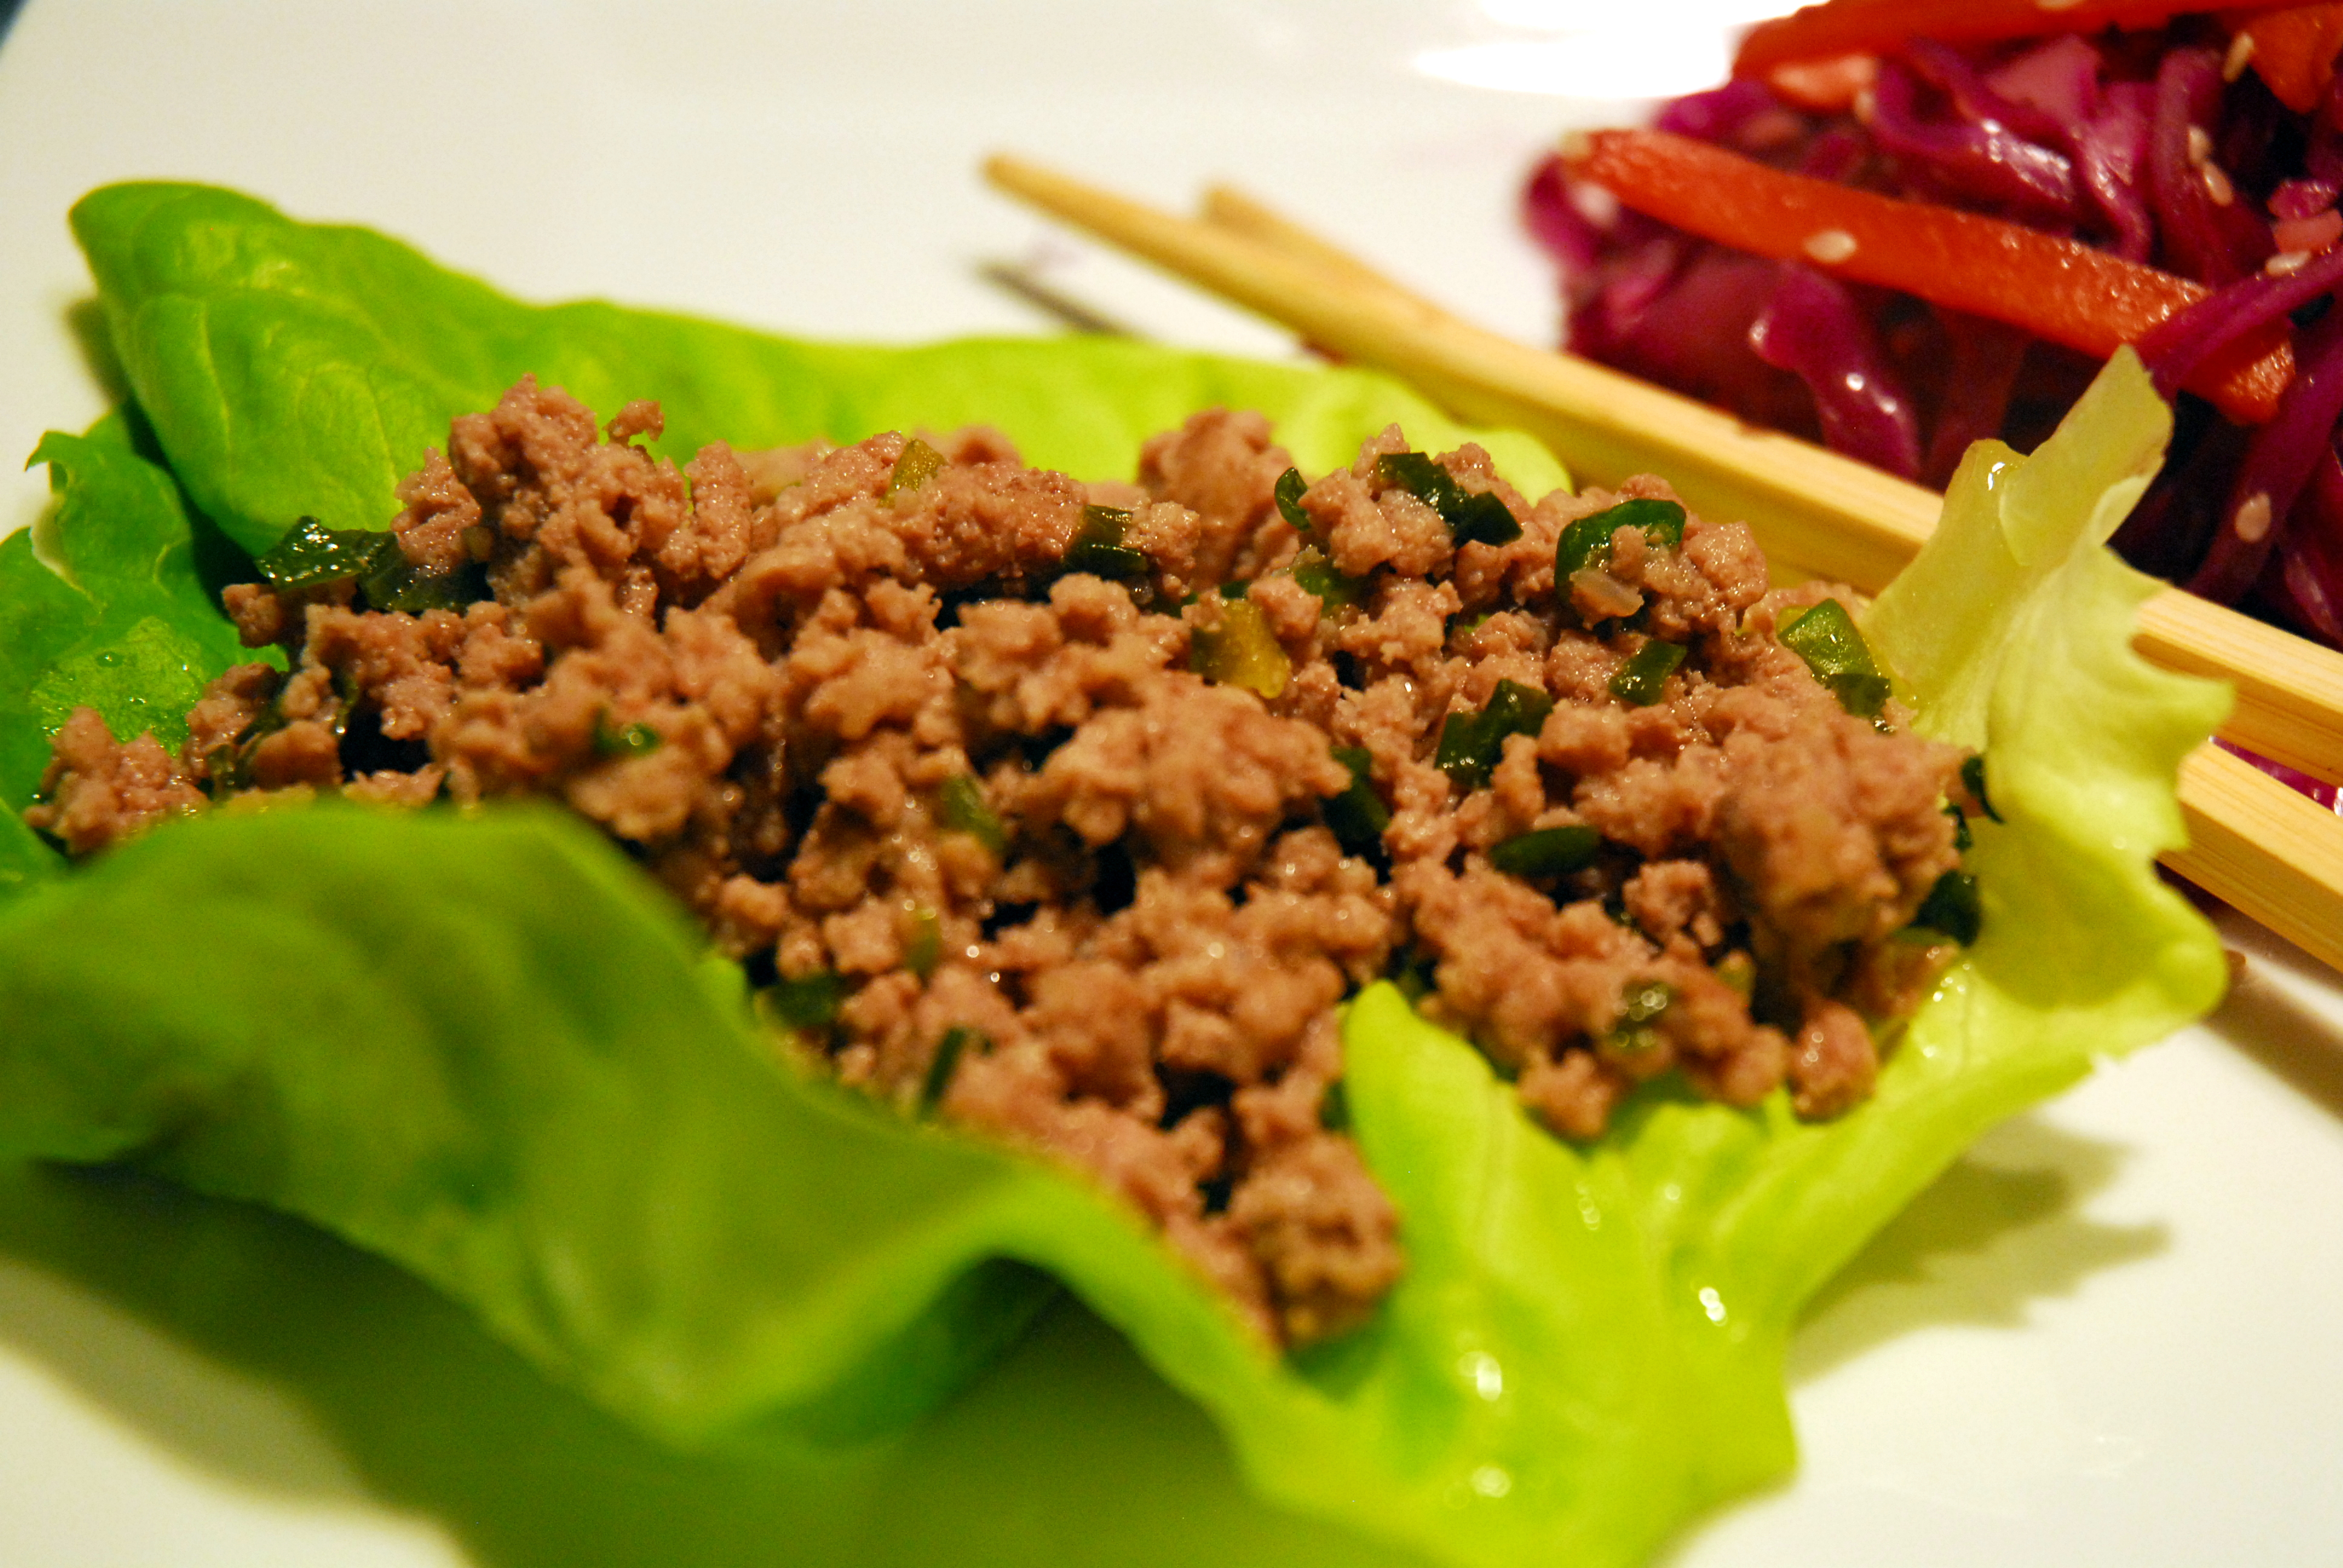 And thought. Asian lettuce wraps something